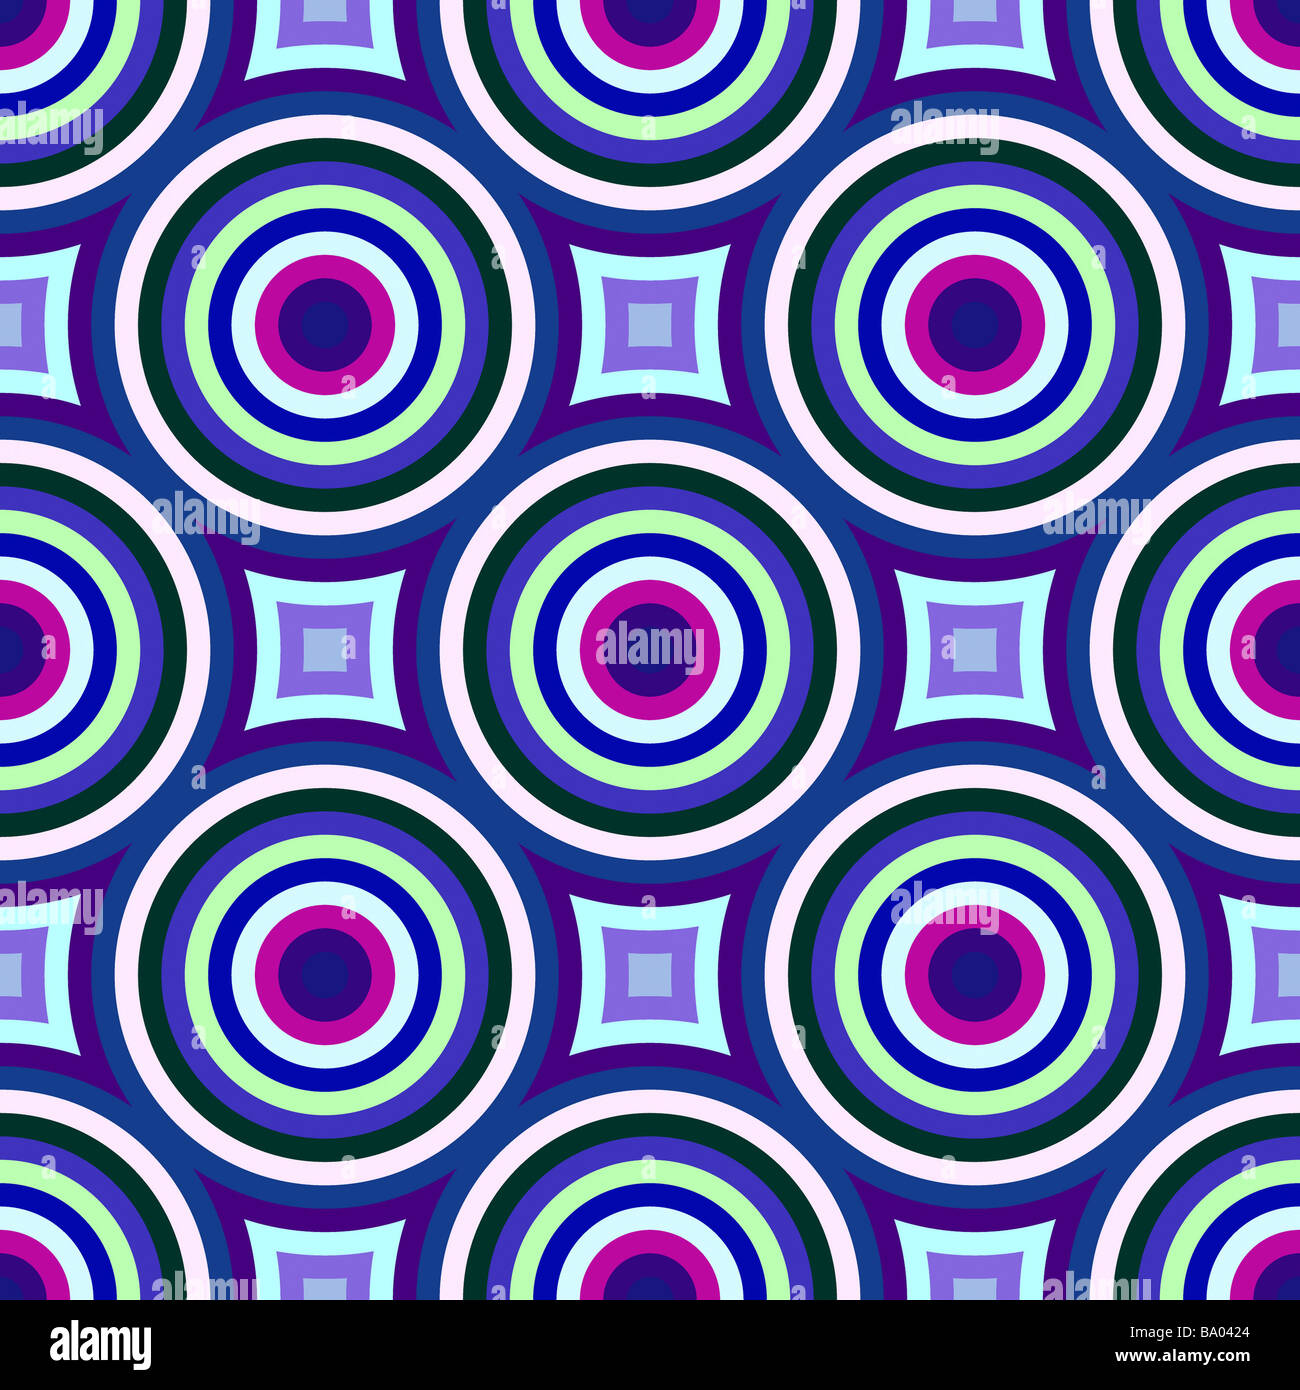 Colorful Abstract Retro Patterns Geometric Design